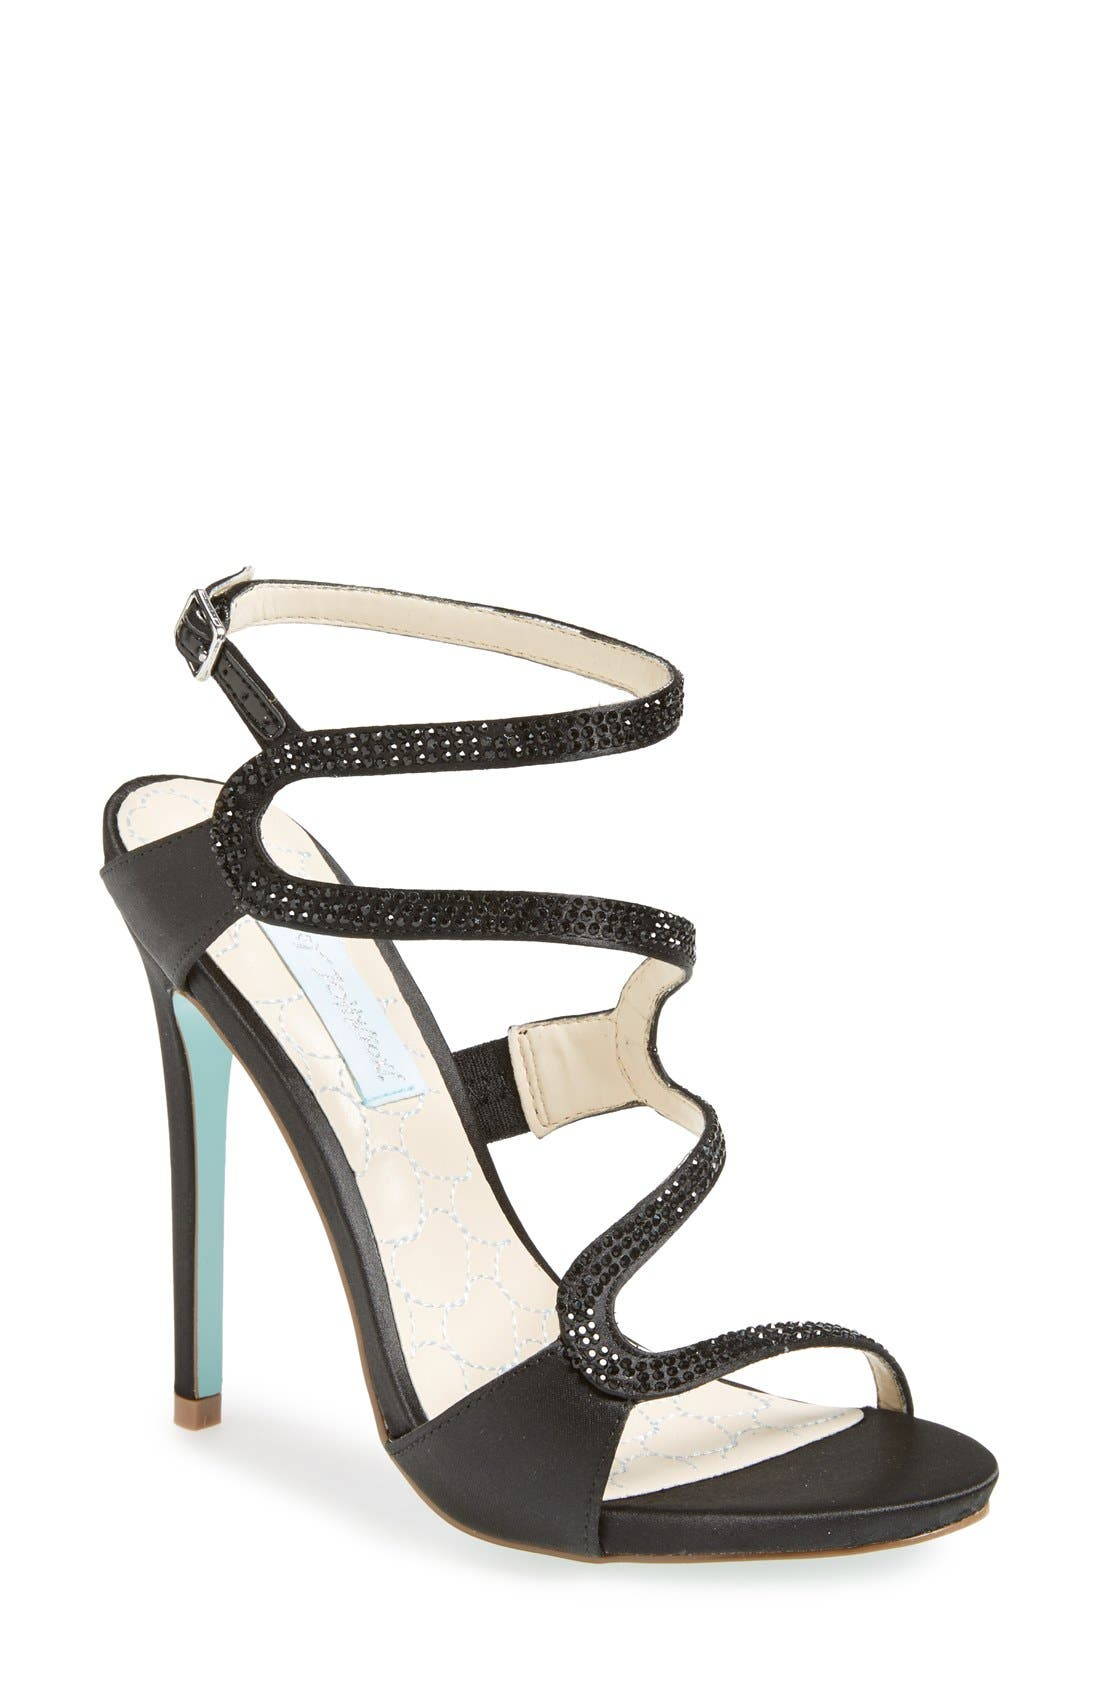 Main Image - Blue by Betsey Johnson 'Gift' Satin Sandal